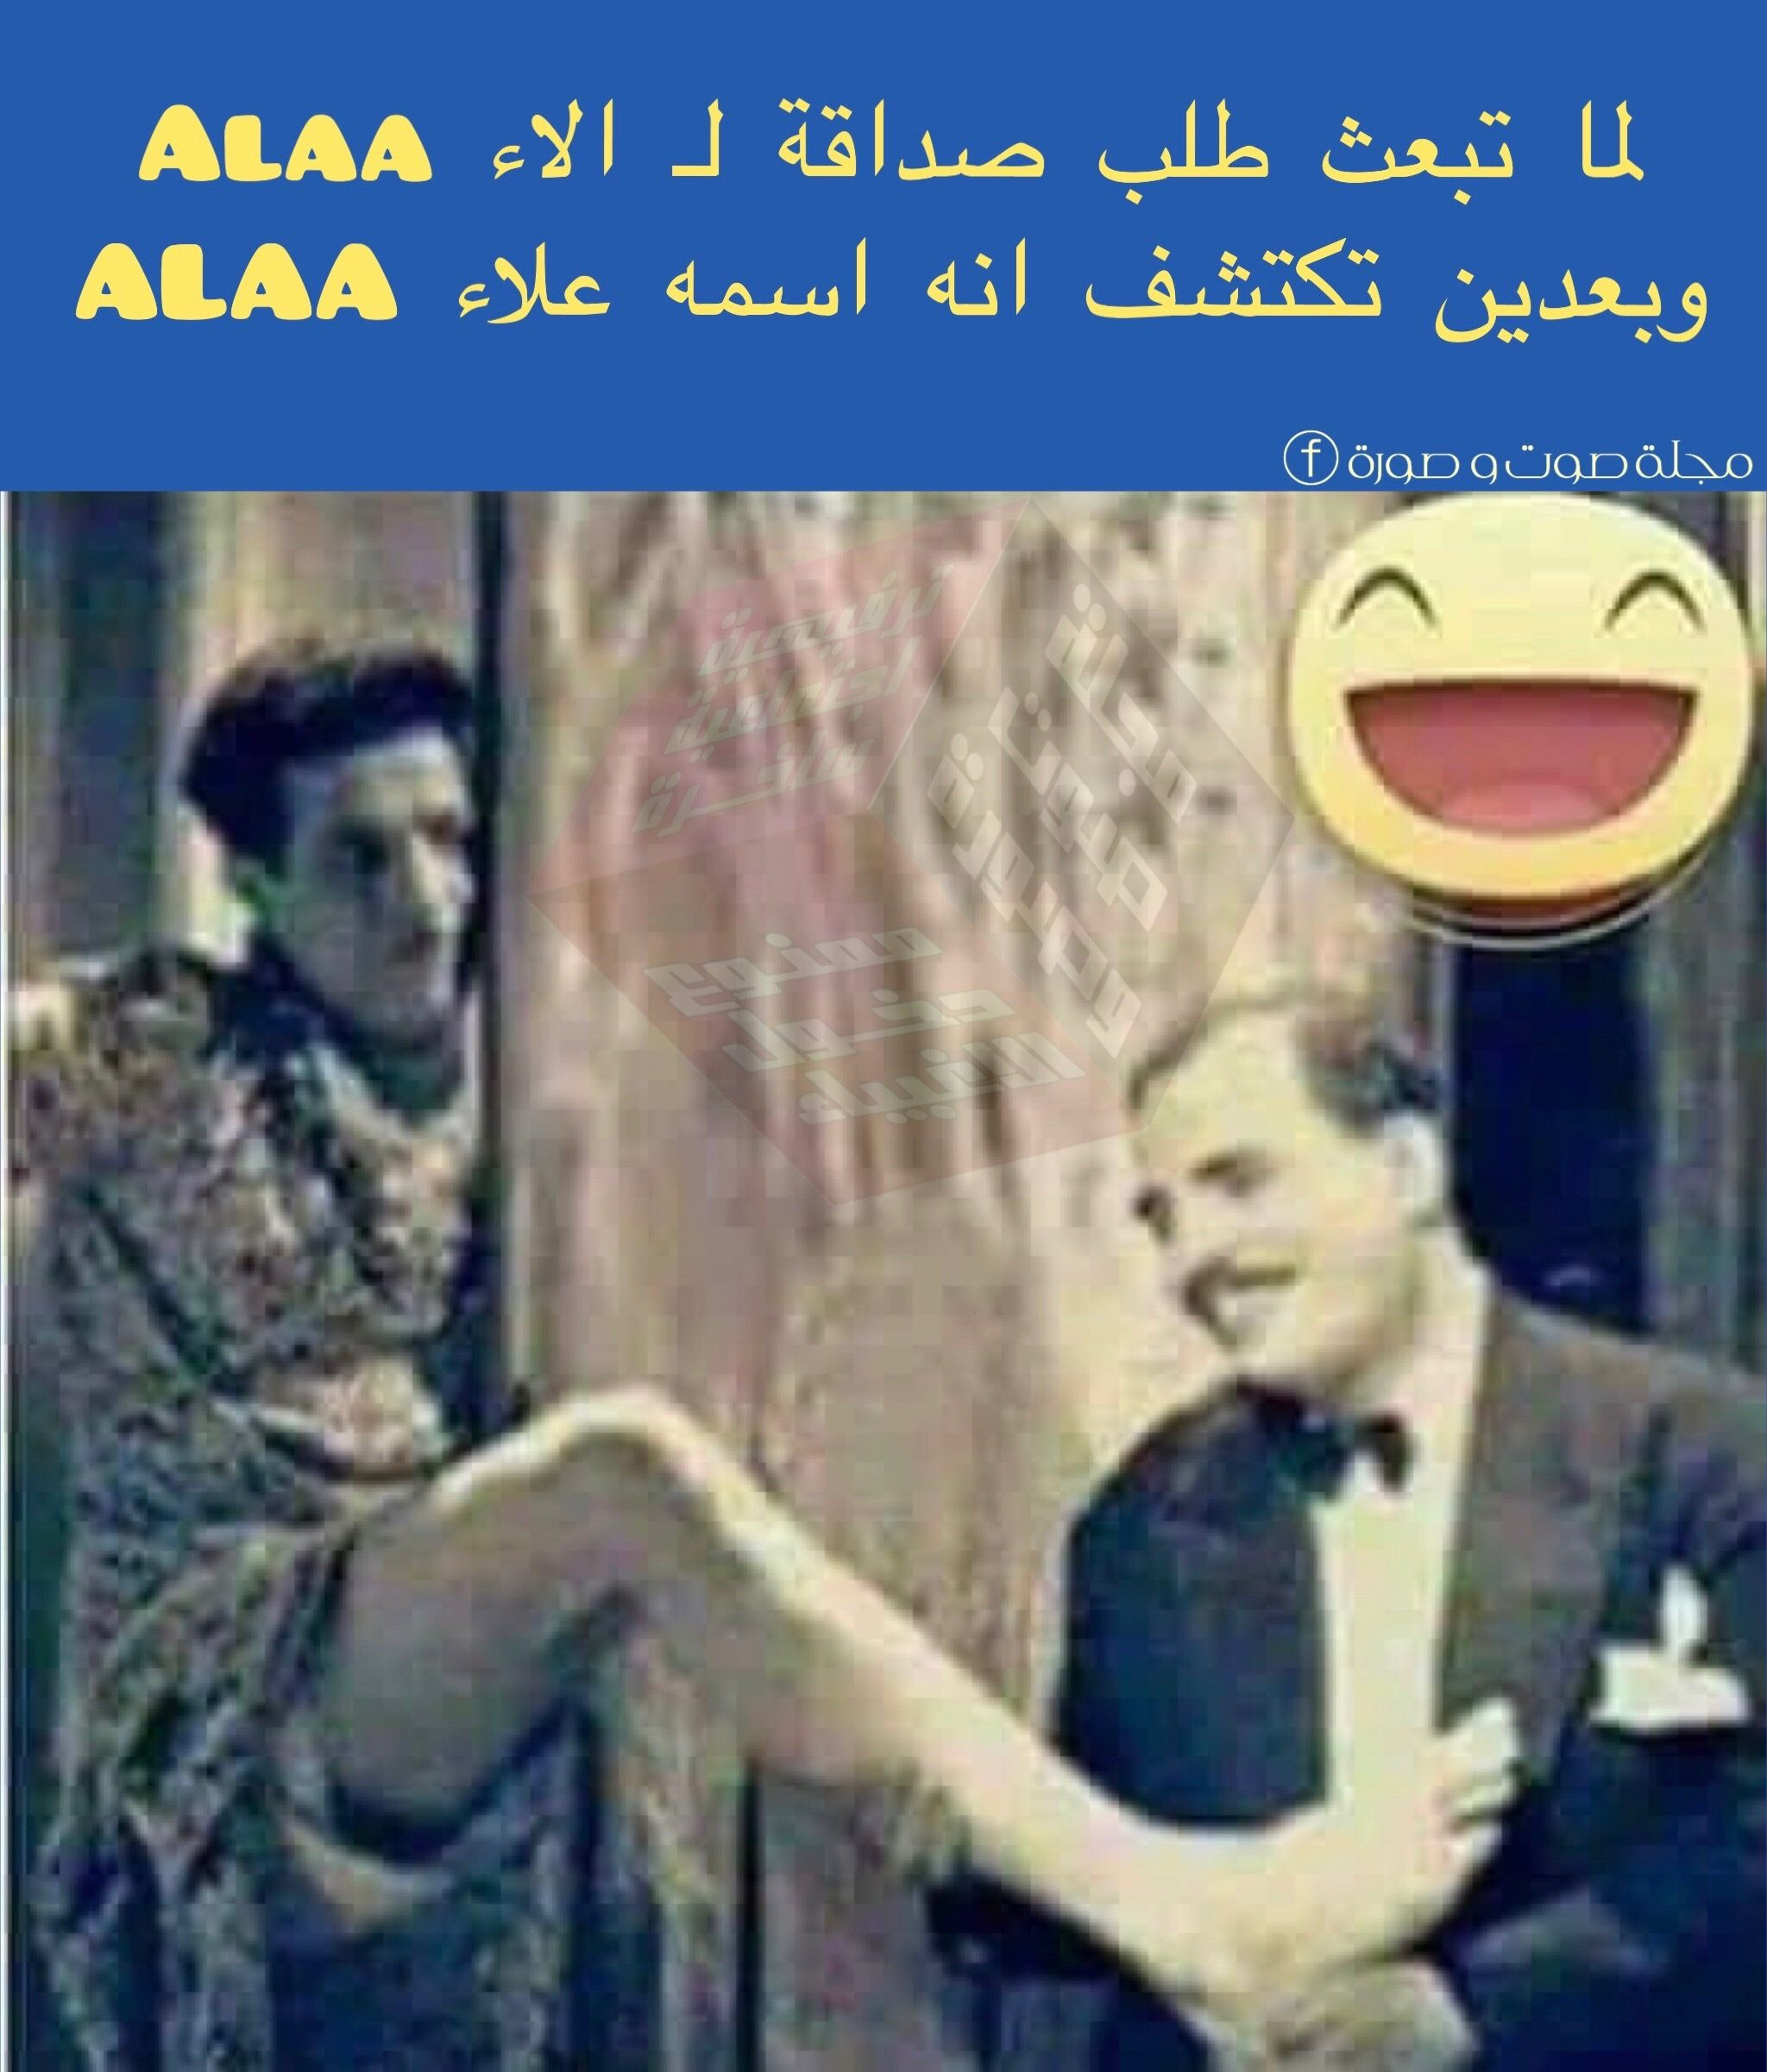 Pin By صوت وصورة Hd On صوت وصورة Hd Arabic Funny Funny Arabic Quotes Sarcastic Pictures